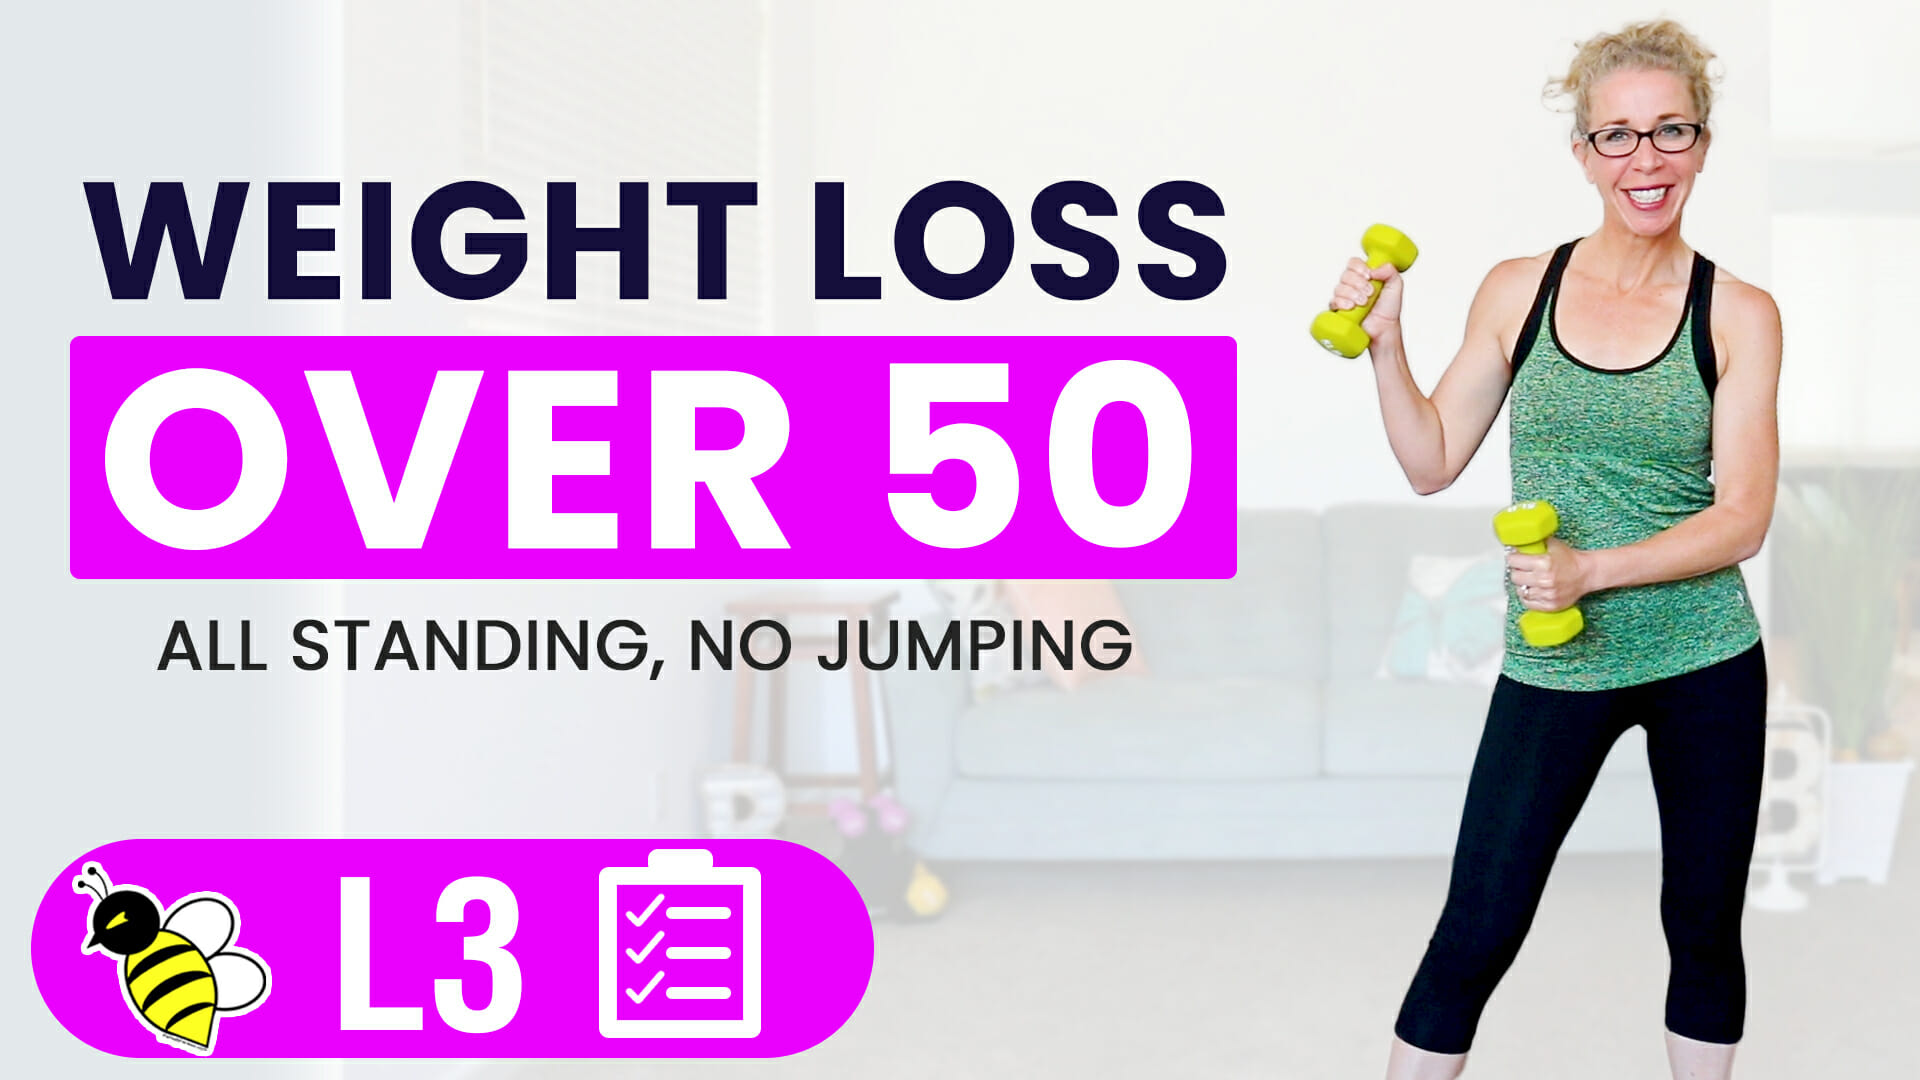 35 Minute WEIGHT LOSS Workout for Women Over 50, Total Body STRENGTH at Home